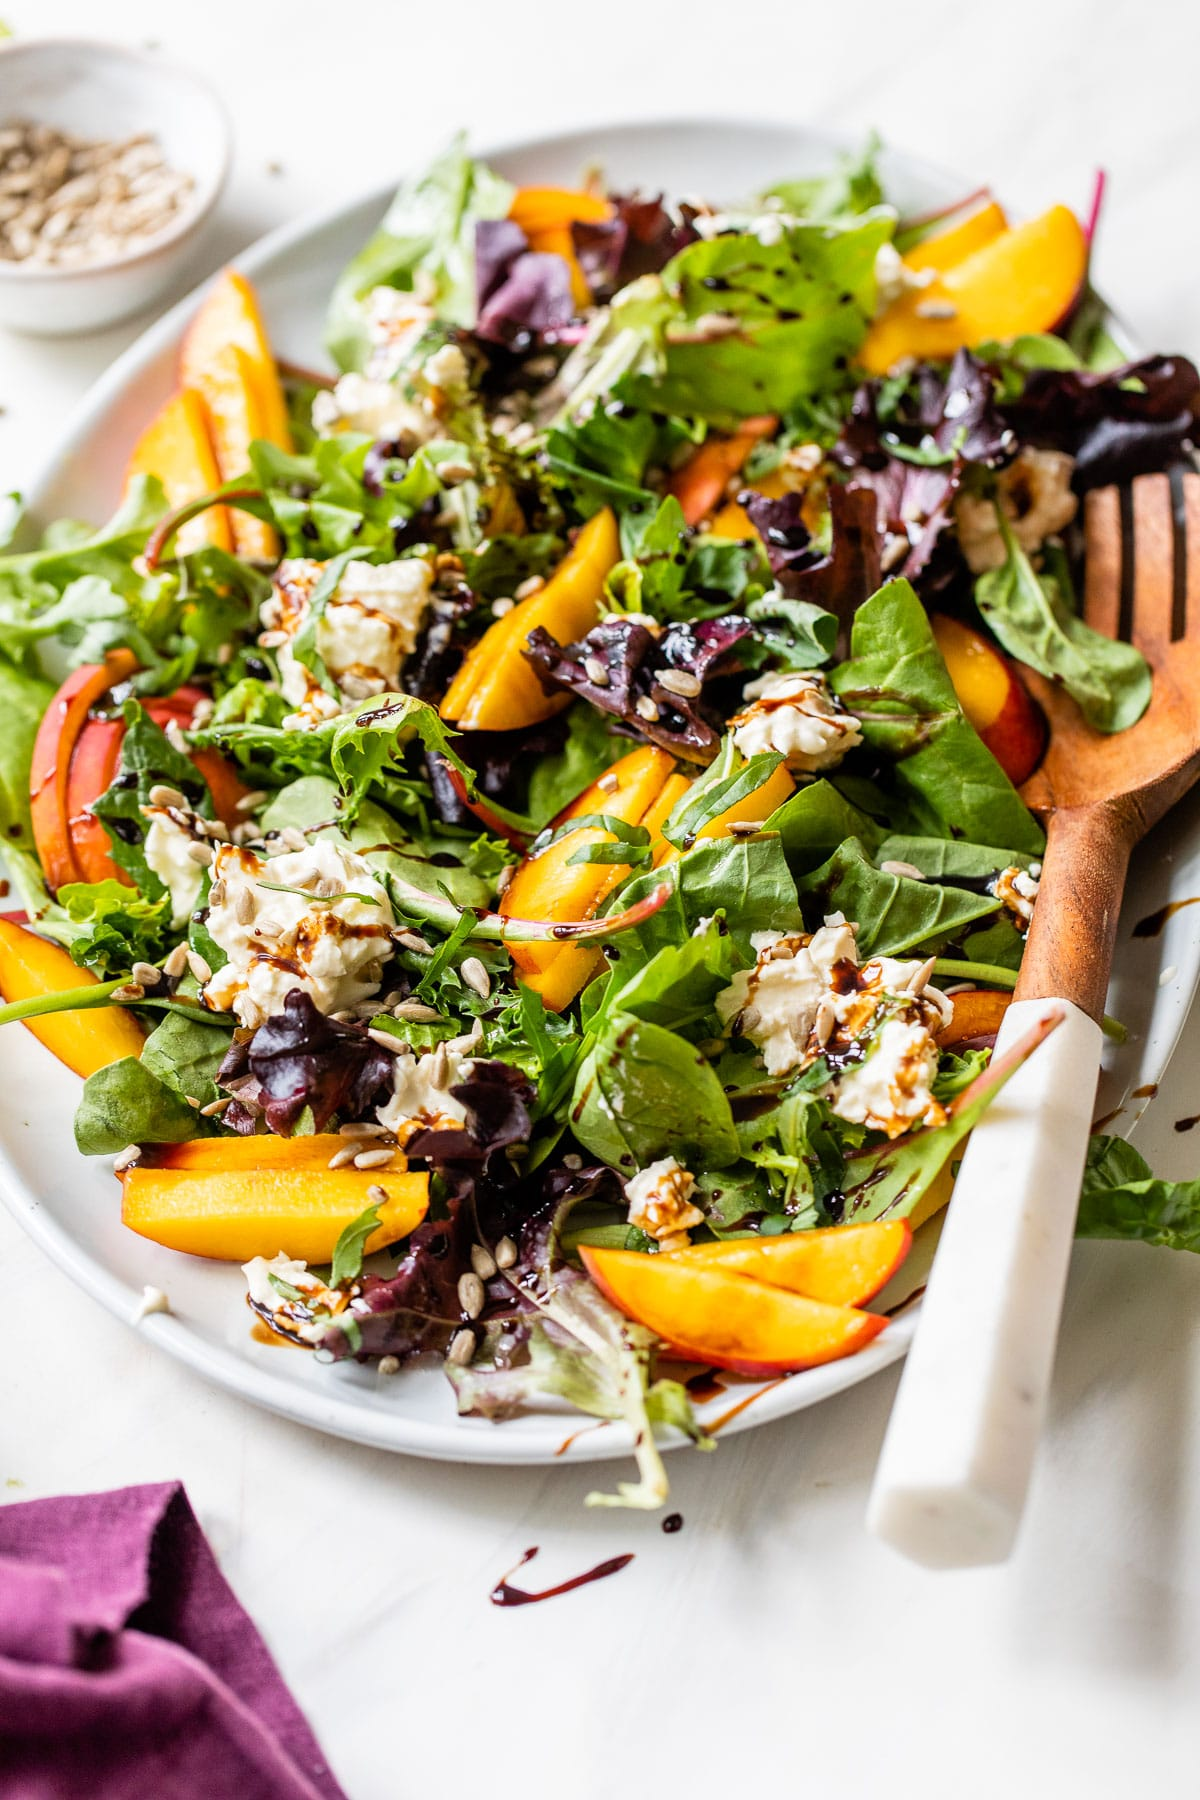 lettuce, peaches and burrata cheese drizzled with balsamic